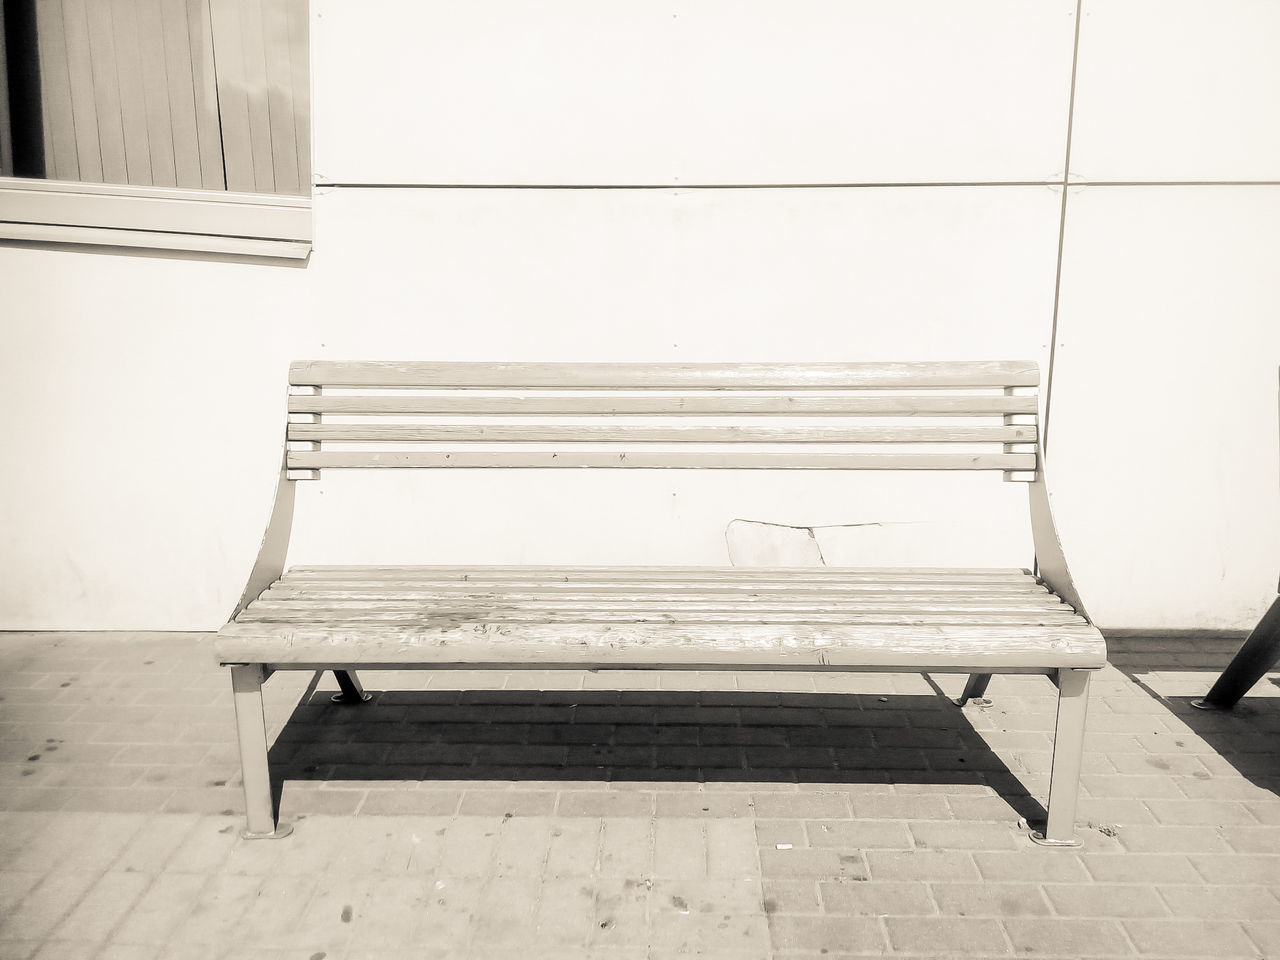 bench, empty, absence, no people, seat, day, architecture, outdoors